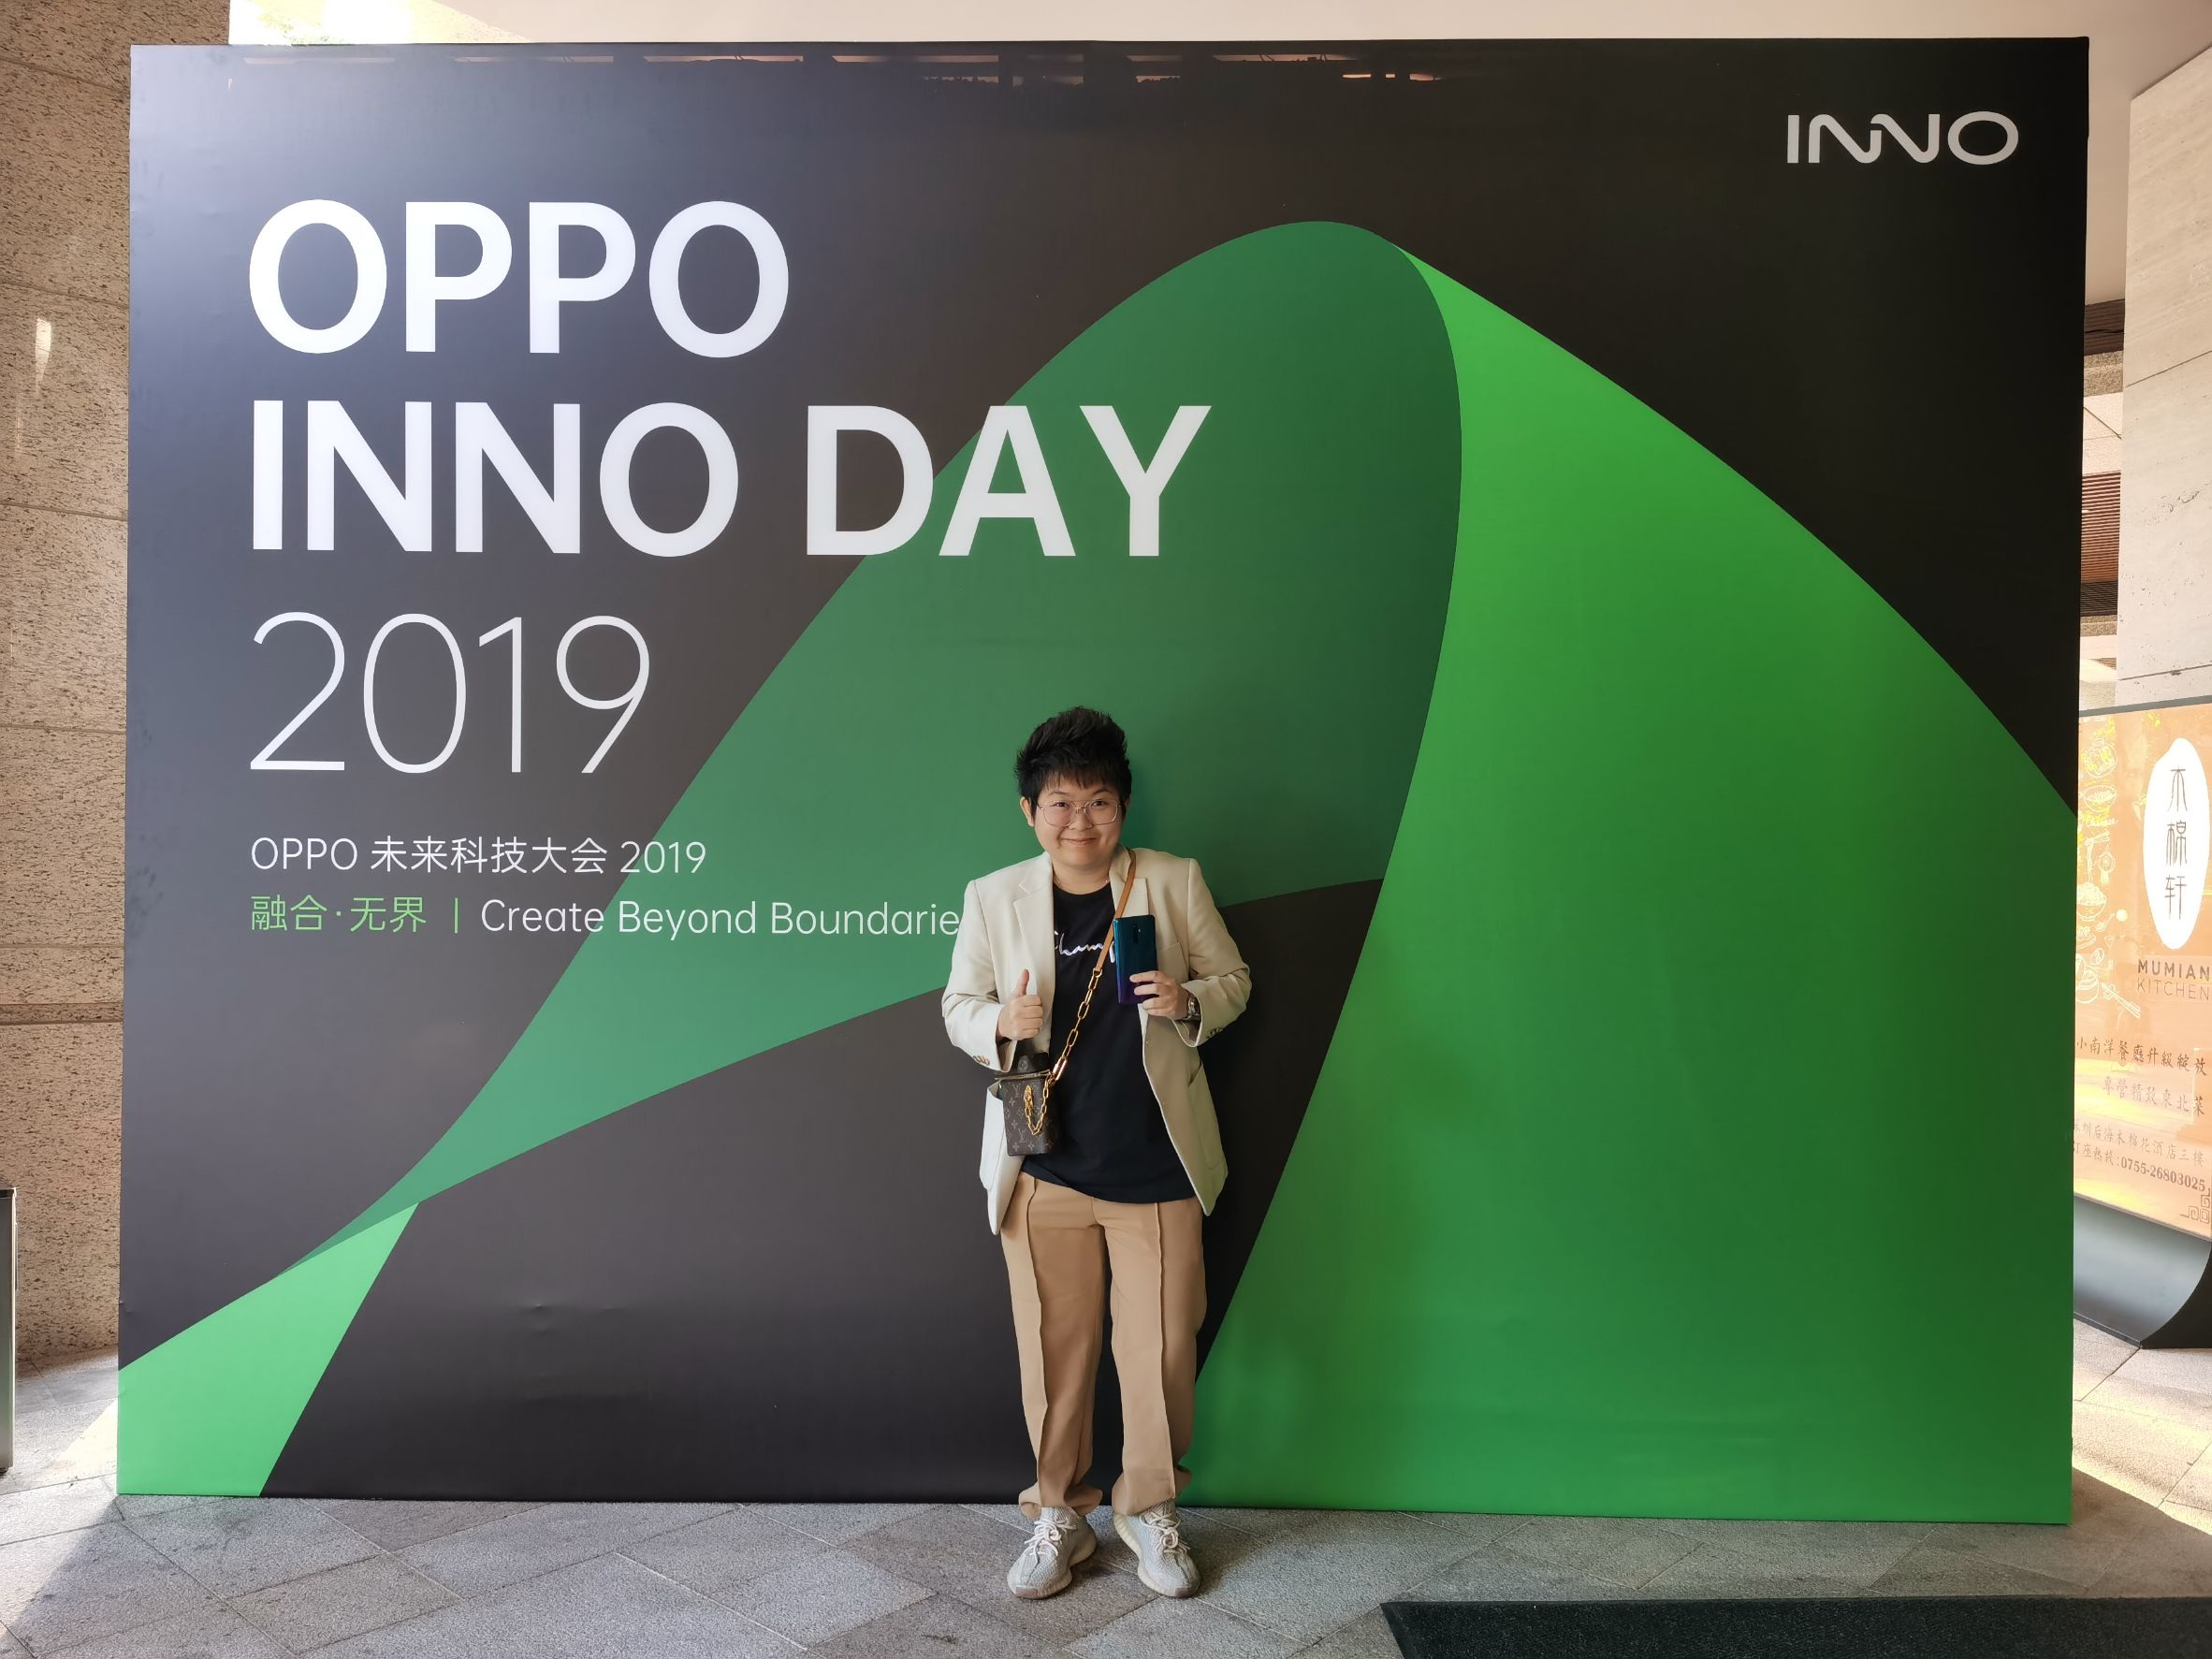 OPPO INNO DAY 2019 iAUMreview 2